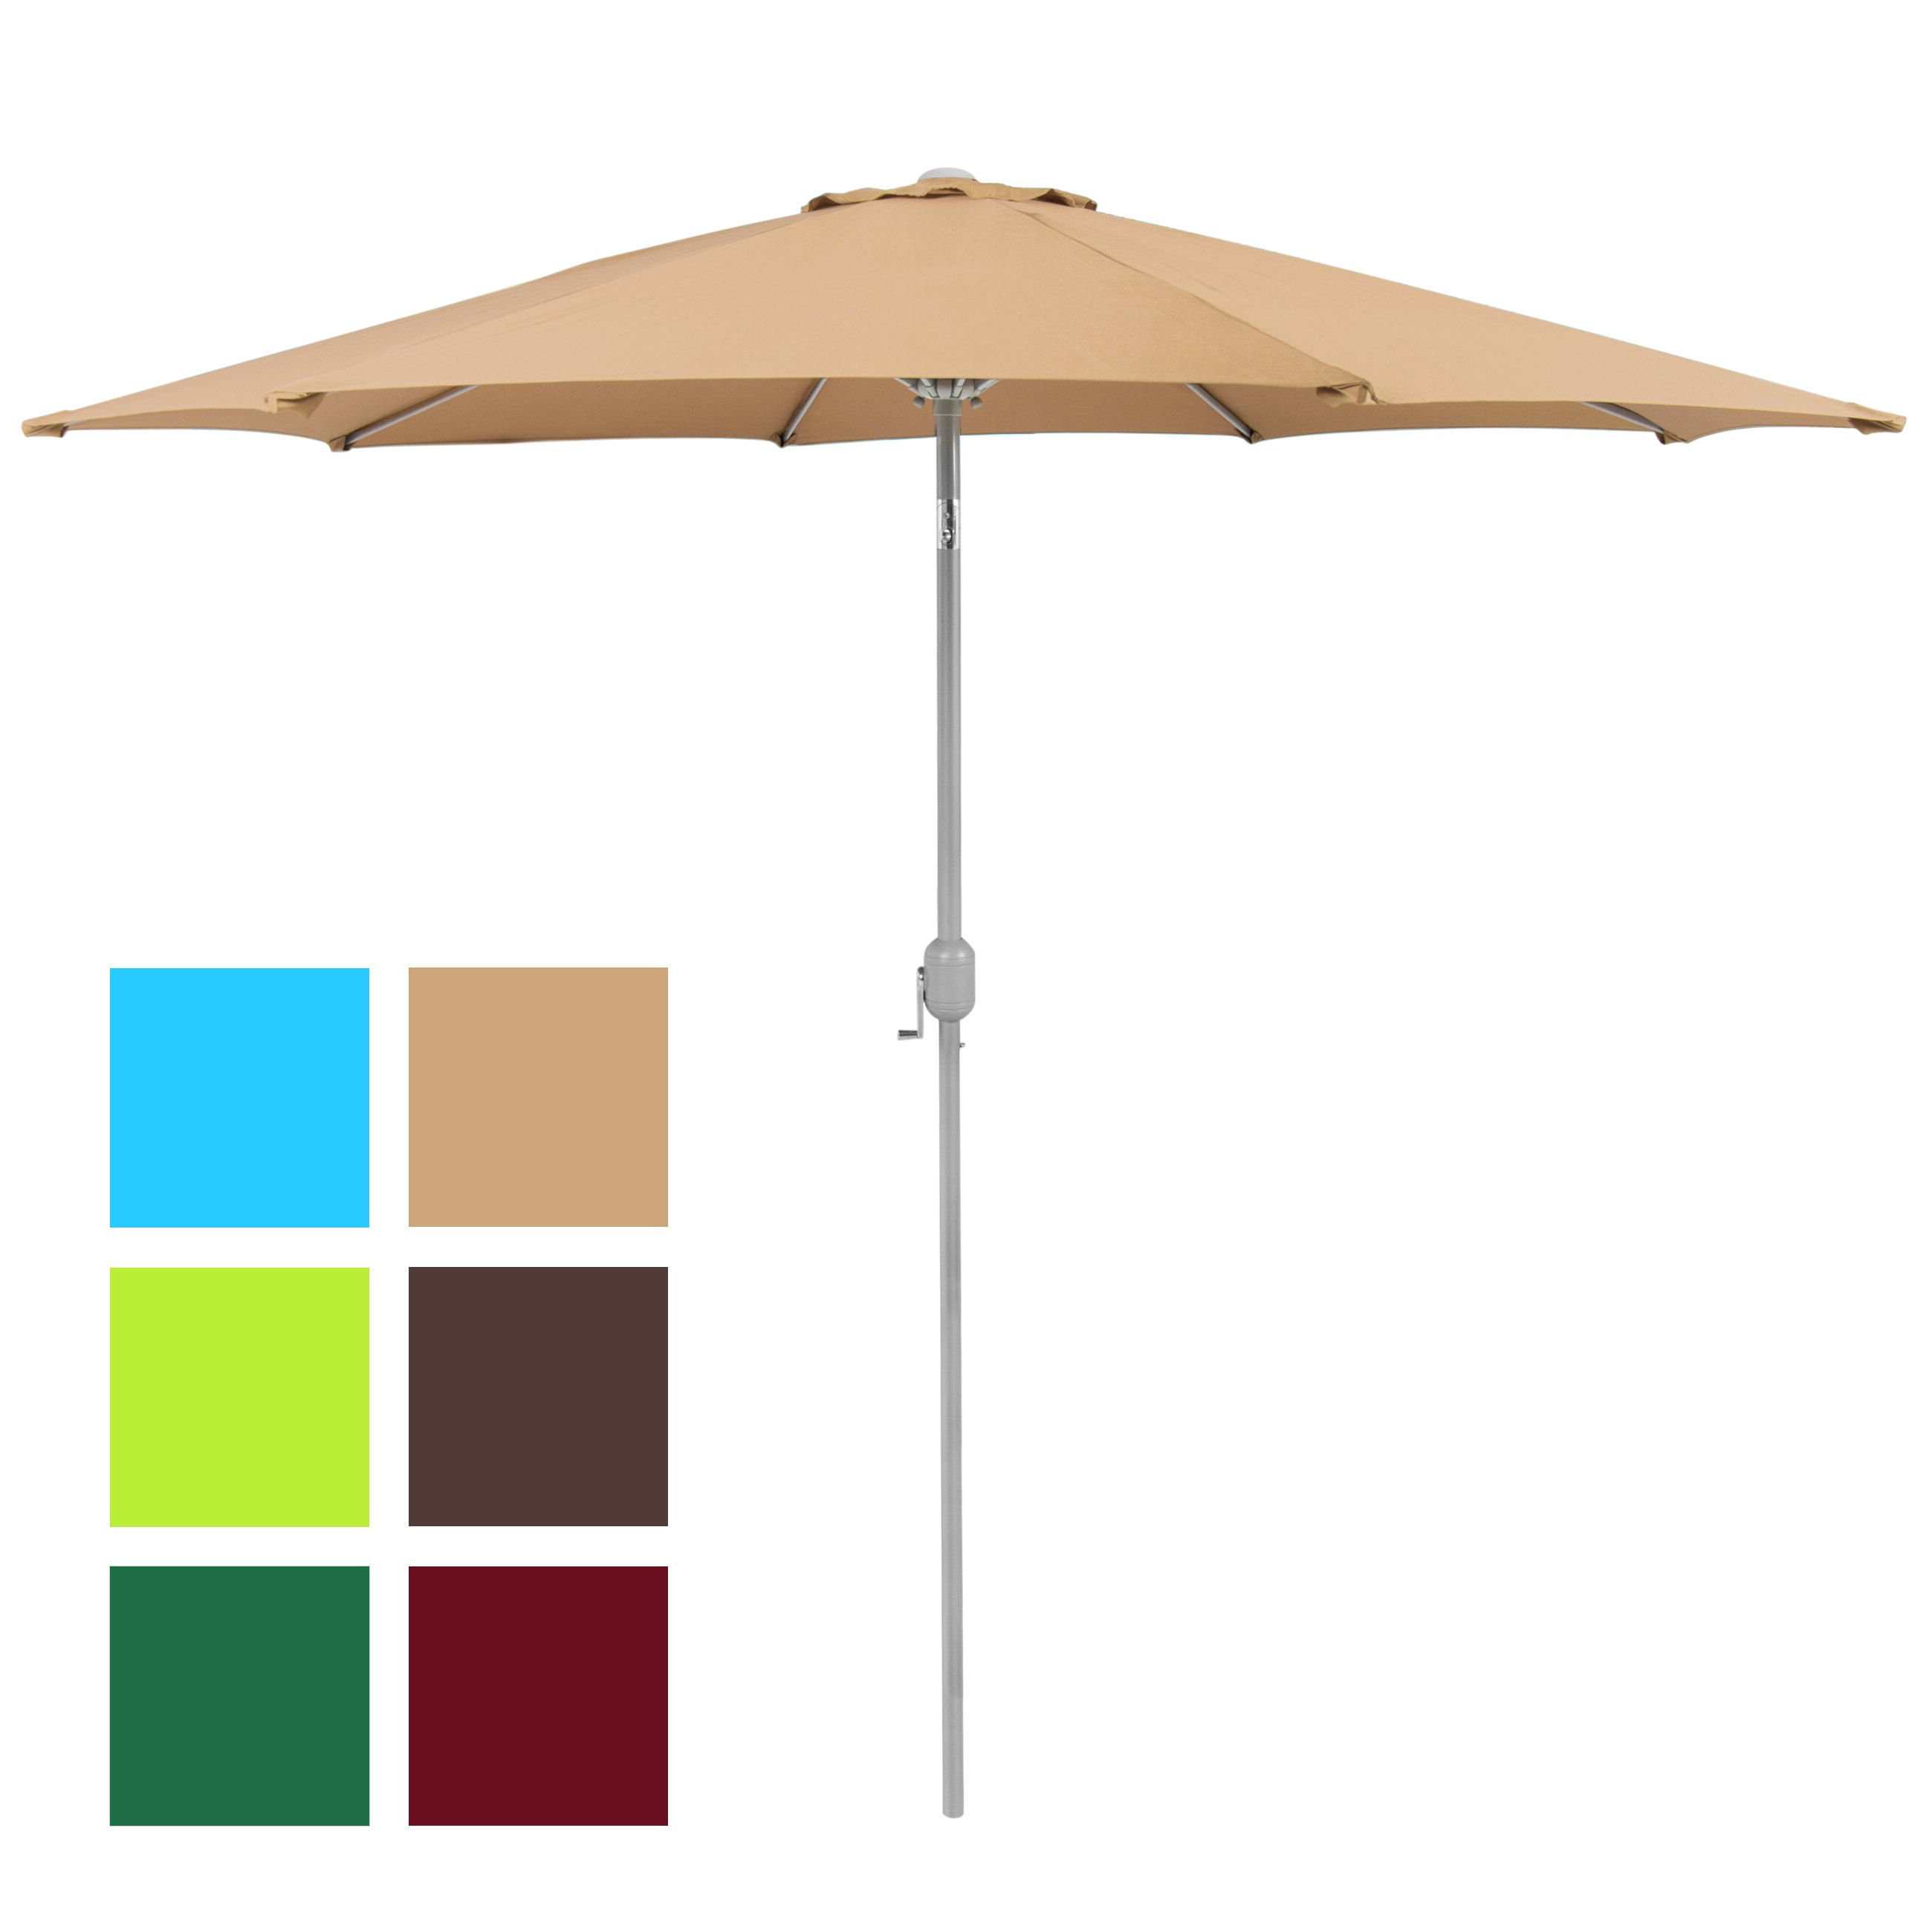 Market Umbrellas Intended For Recent Patio Umbrella 9' Aluminum Patio Market Umbrella Tilt W/ Crank Outdoor Tan (View 6 of 20)